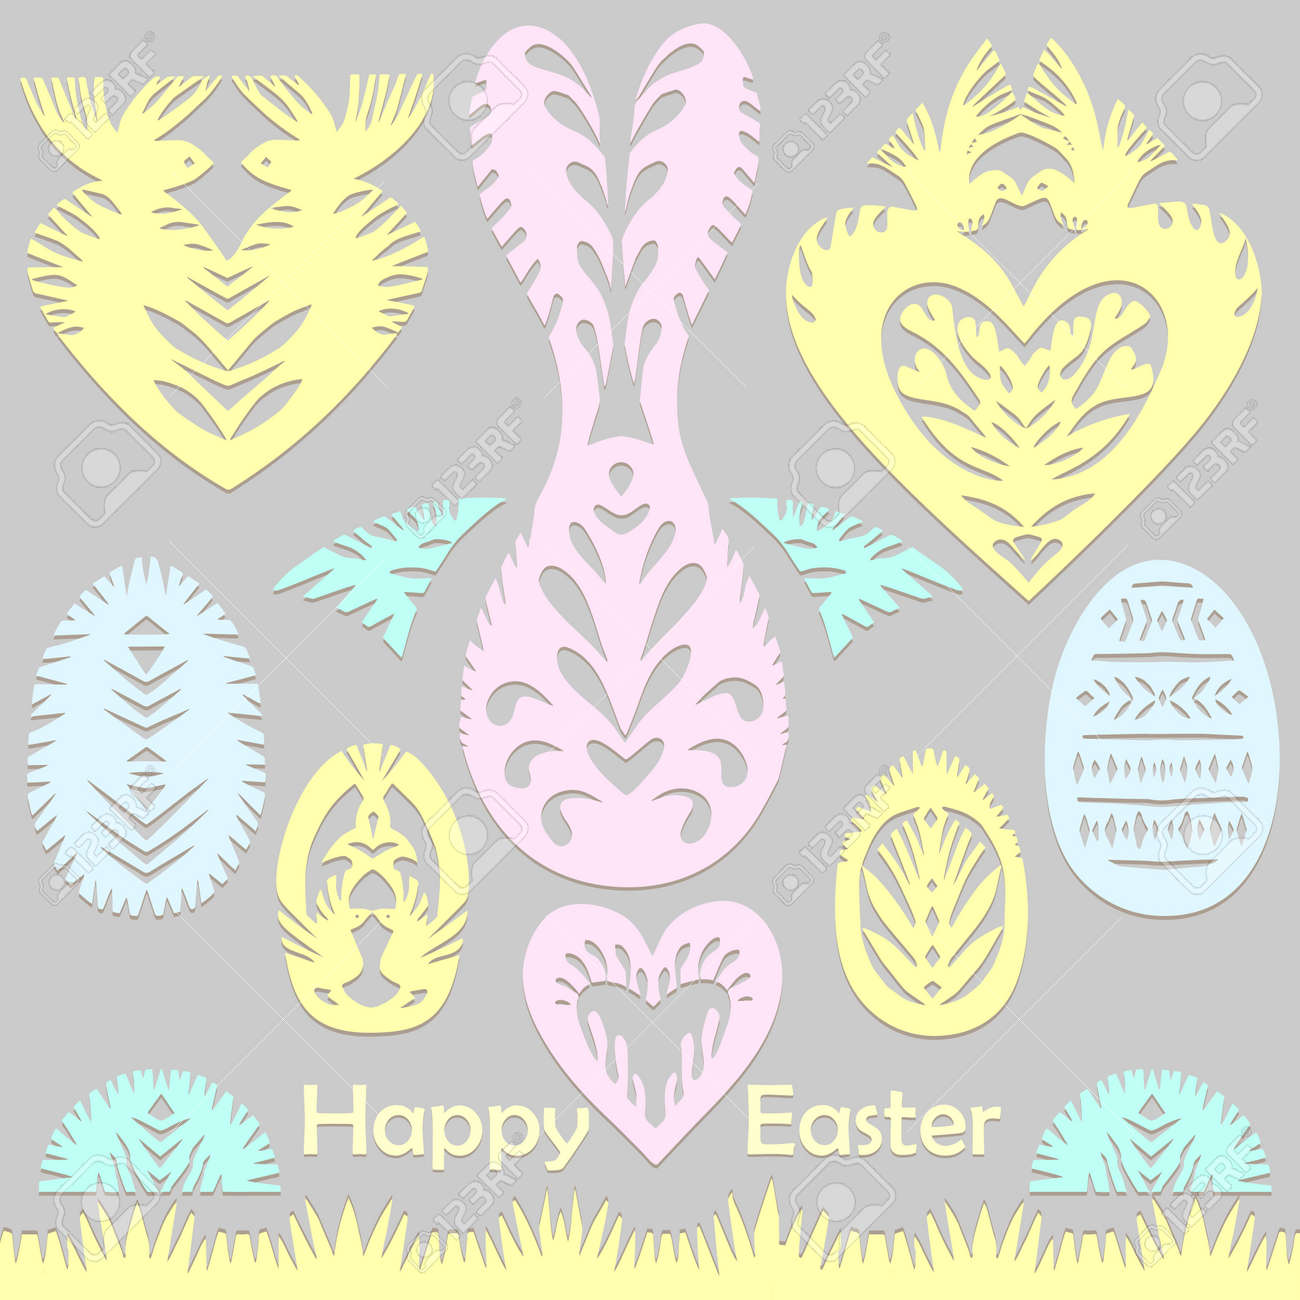 Set of paper cut festive symbols Holiday spring Easter signs egg, rabbit, heart, tree in pink, yellow, gray, blue colors. Traditional Belarusian, Polish paper clippings. Hand made. Vector - 164139370